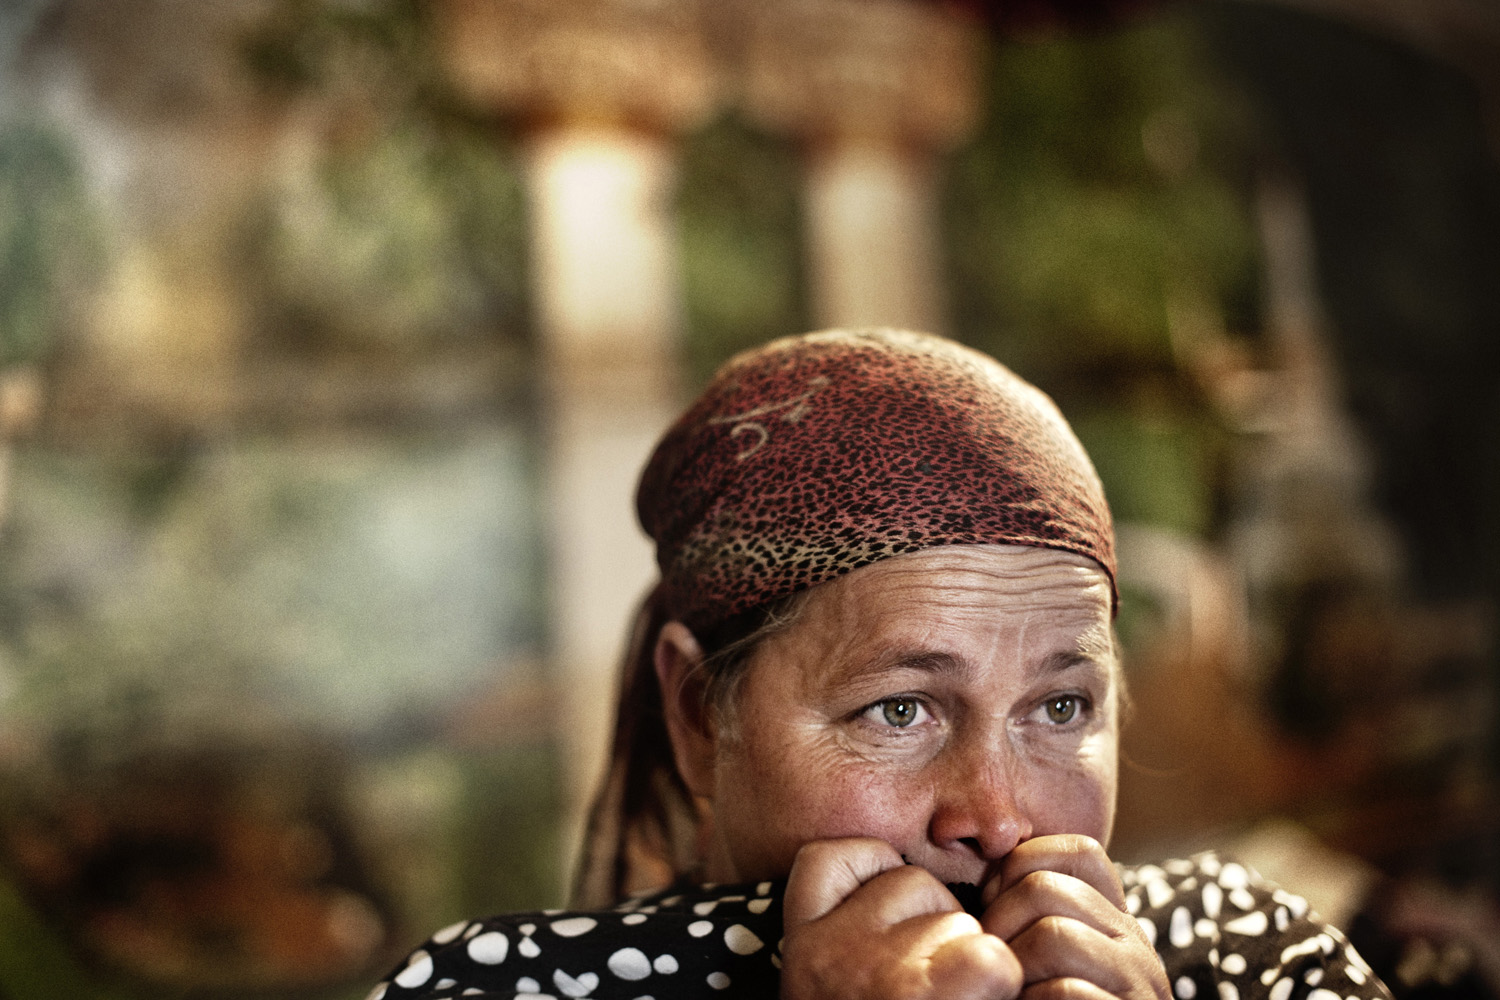 A Chechen refugee is frightened in 2009 during a Russian police visit to the refugee camp where she lives.